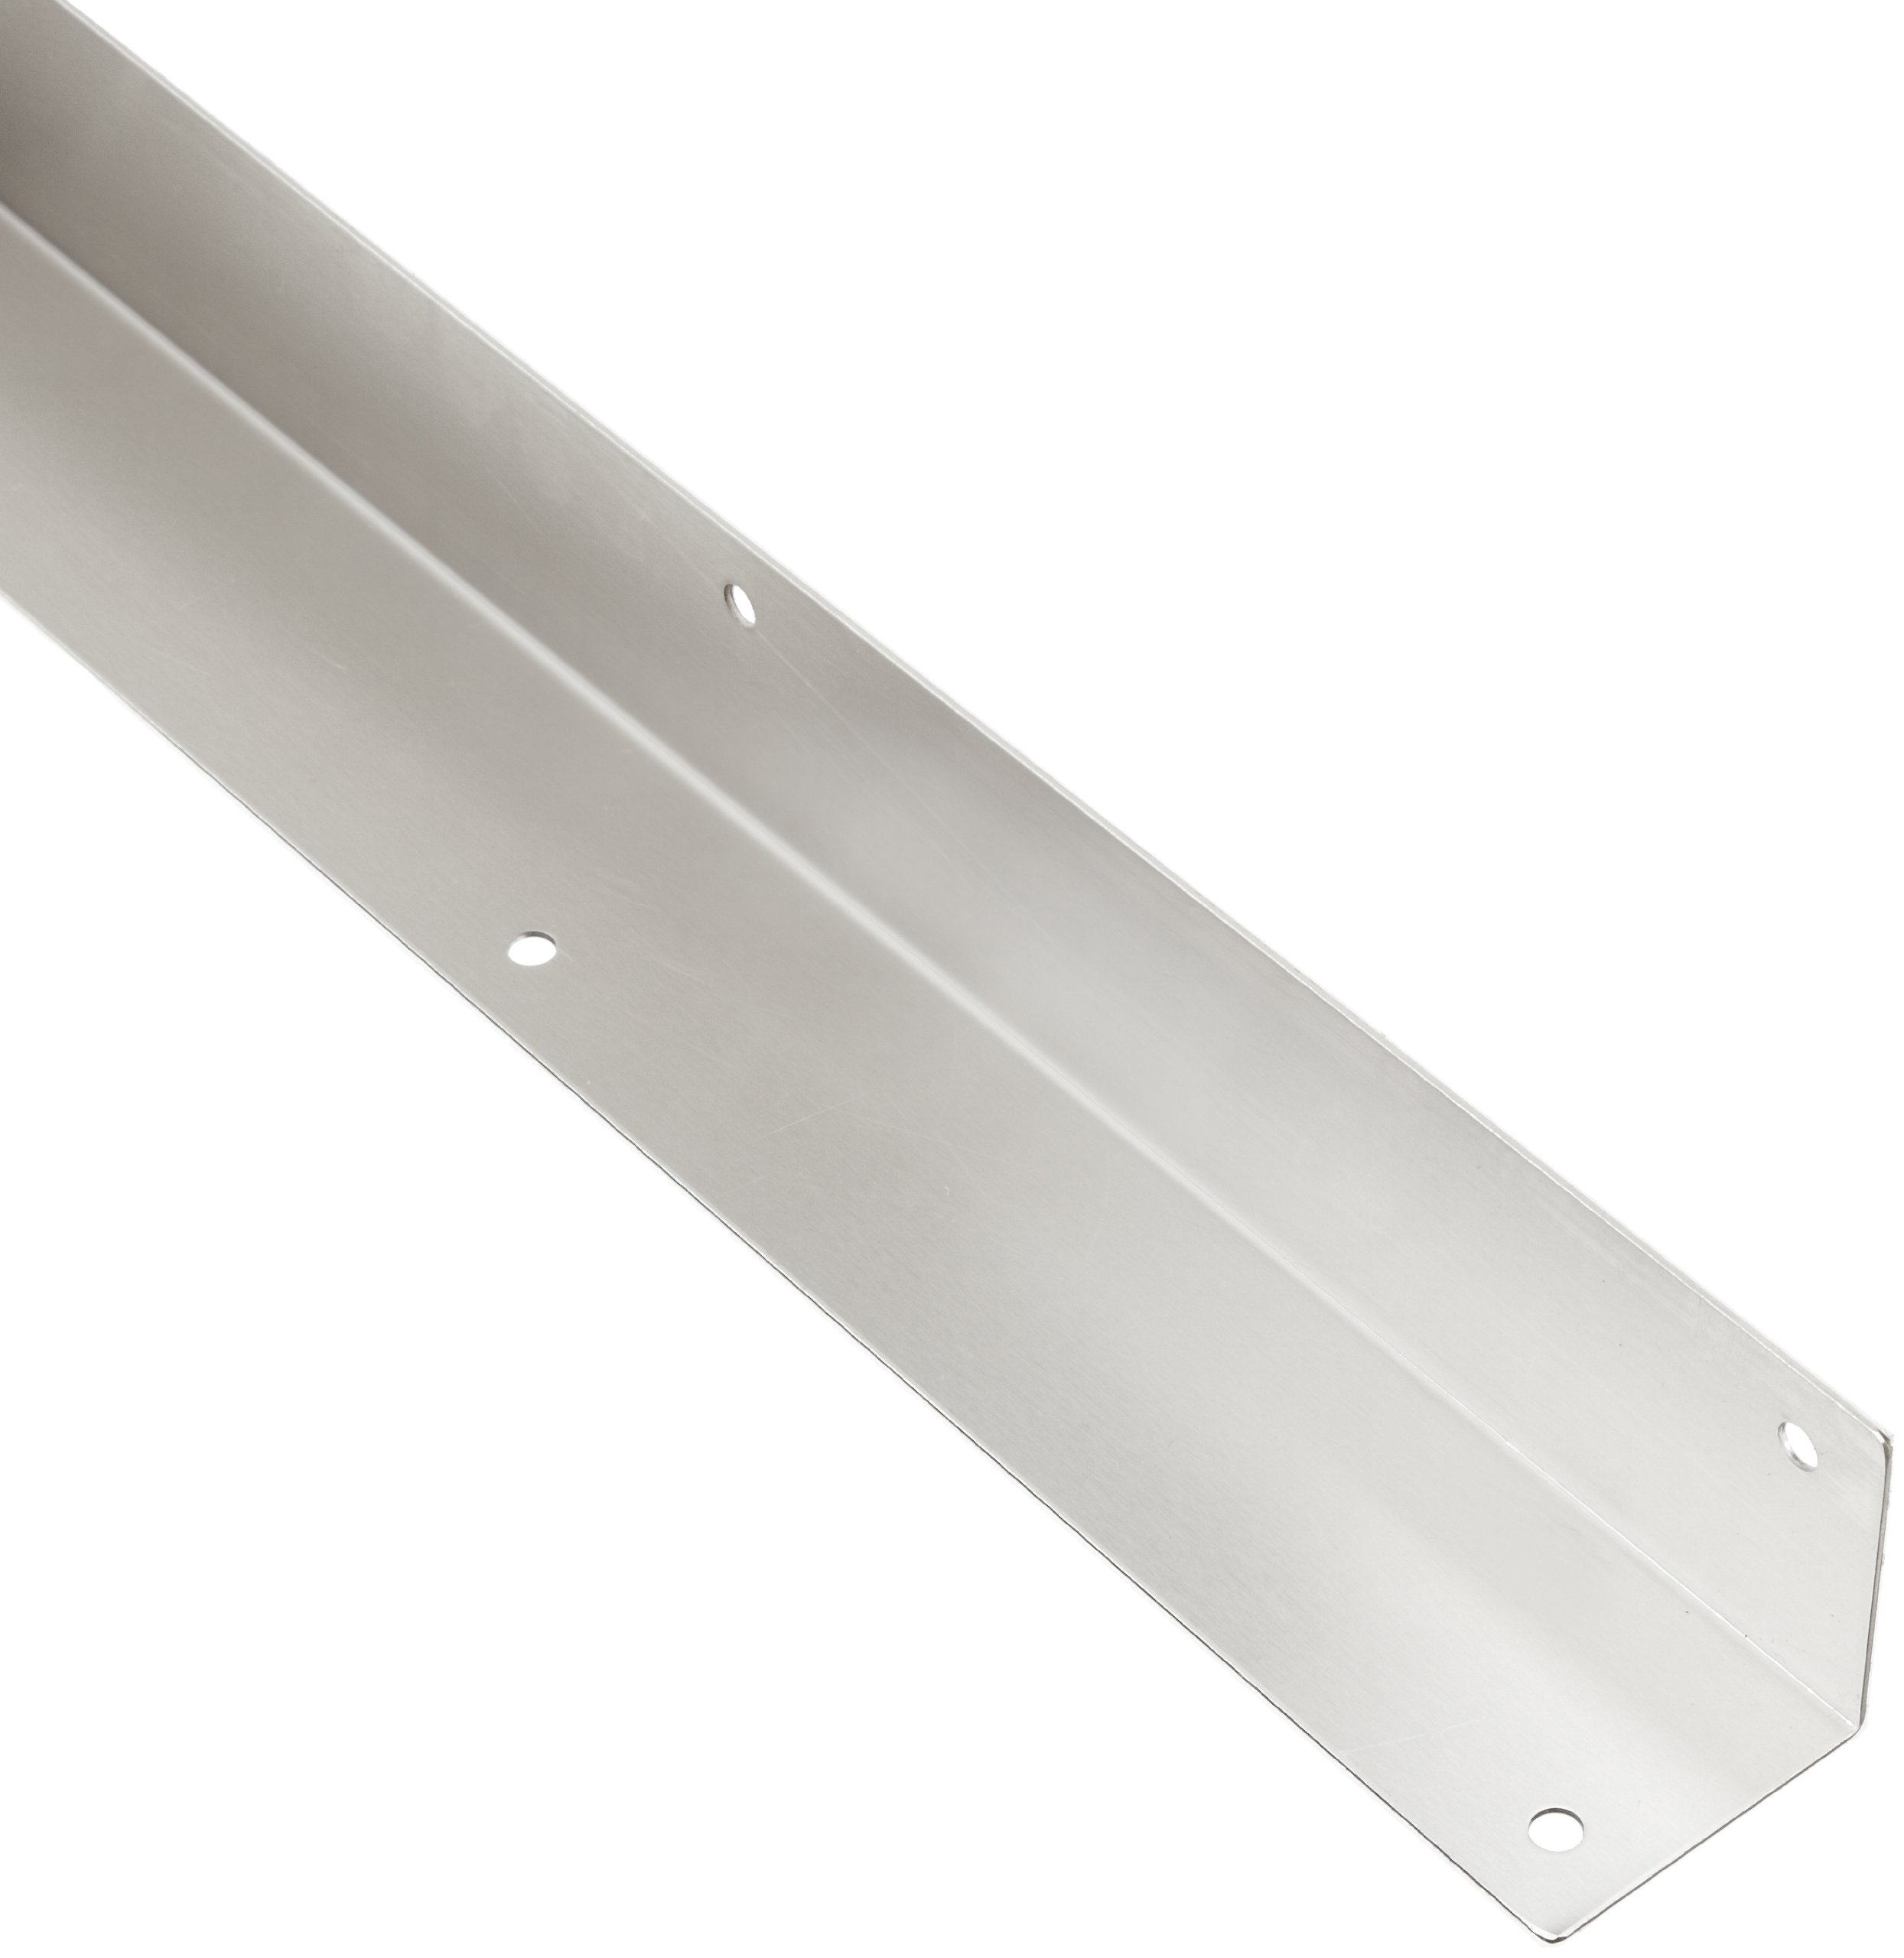 Rockwood 295.32D 2 X 2 X 40 Stainless Steel Square Corner Guard, 2'' x 2'' Edge, 40'' Height, Satin Finish